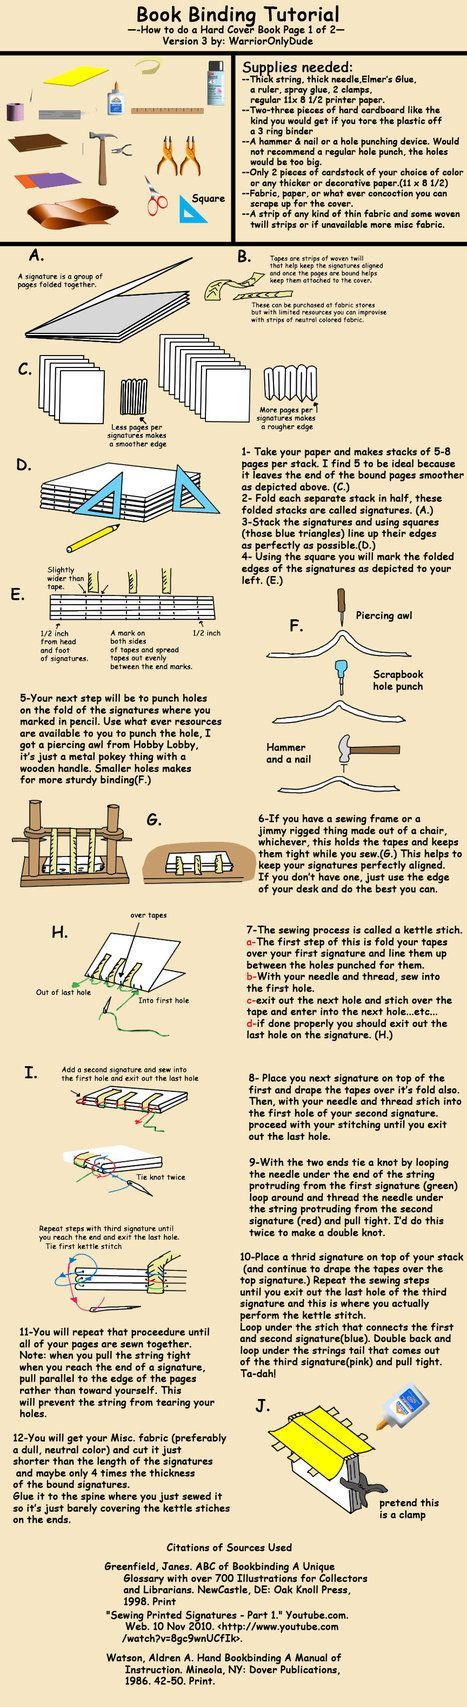 Book Tutorial pg 1 by *warrioronlydude on deviantART